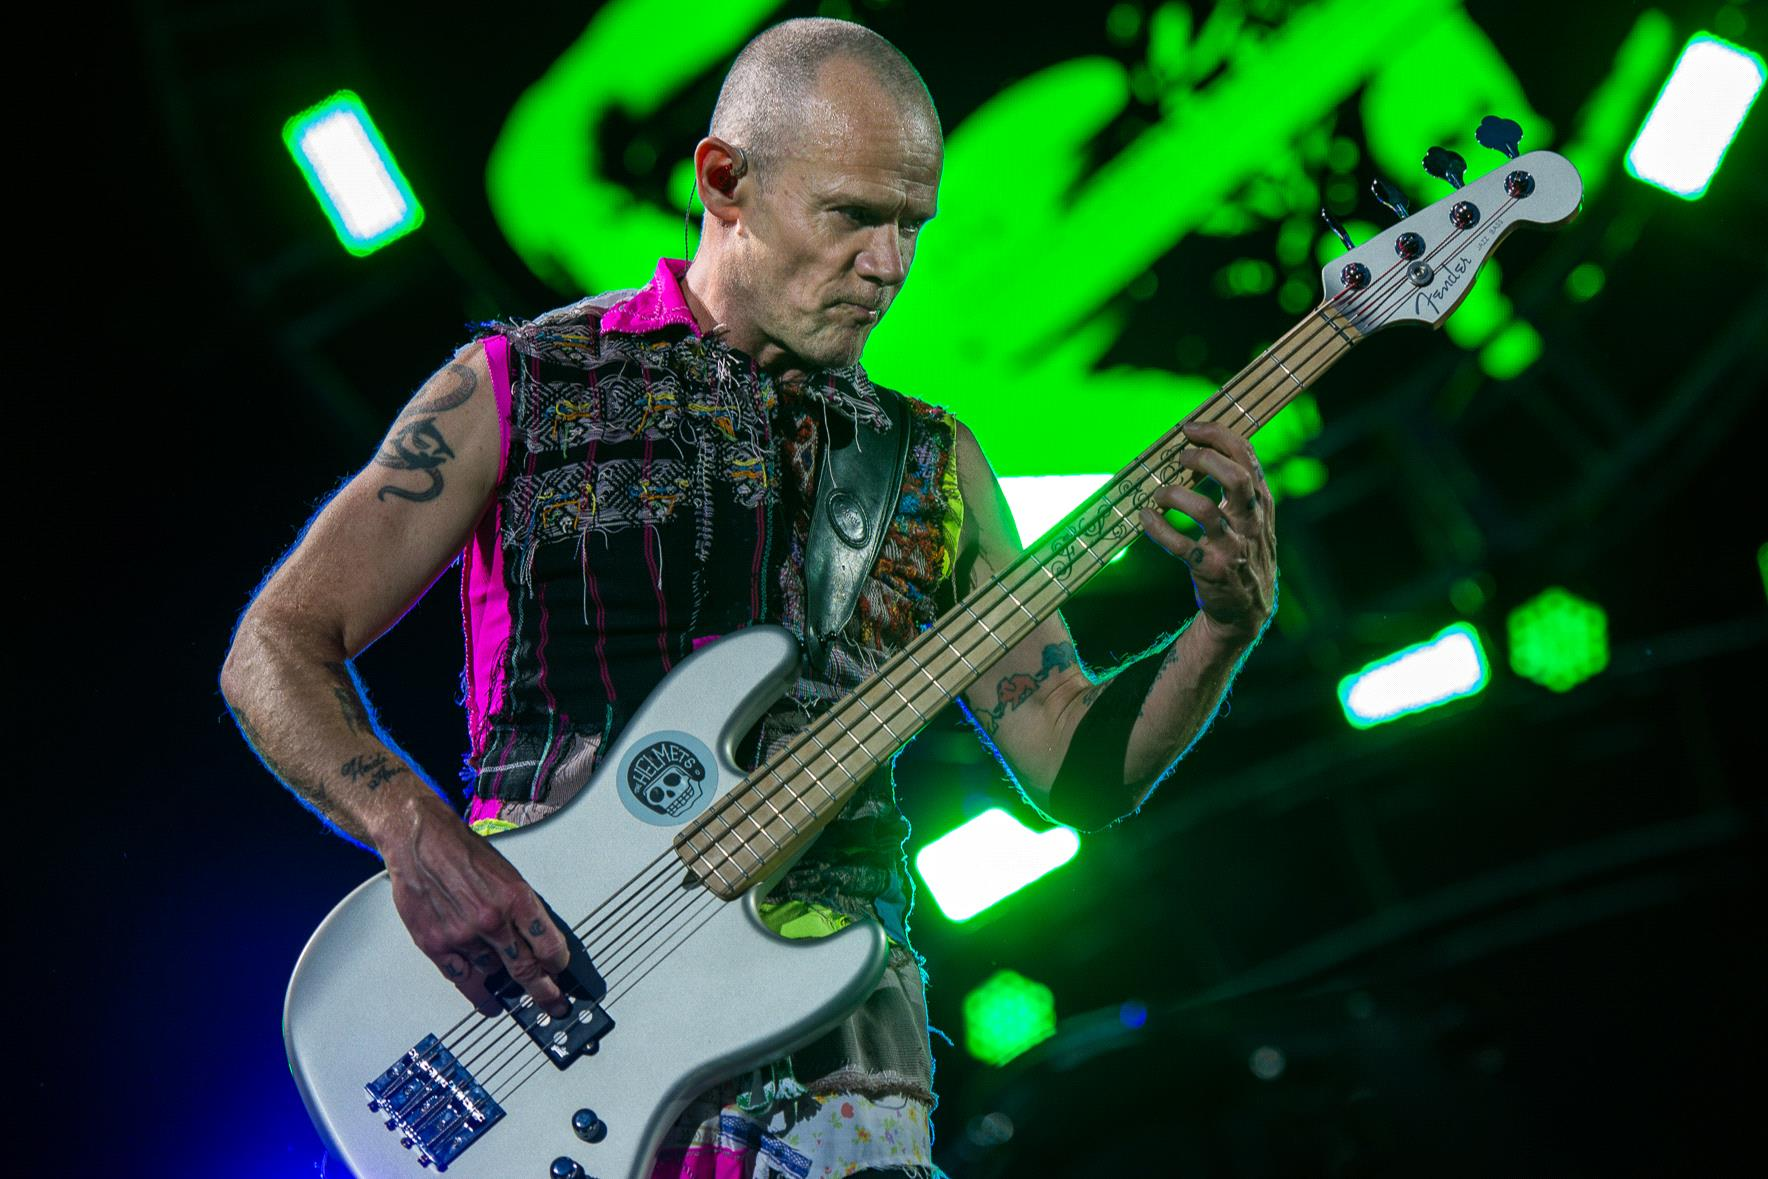 Even Flea from Red Hot Chili Peppers likes one of my top bets.